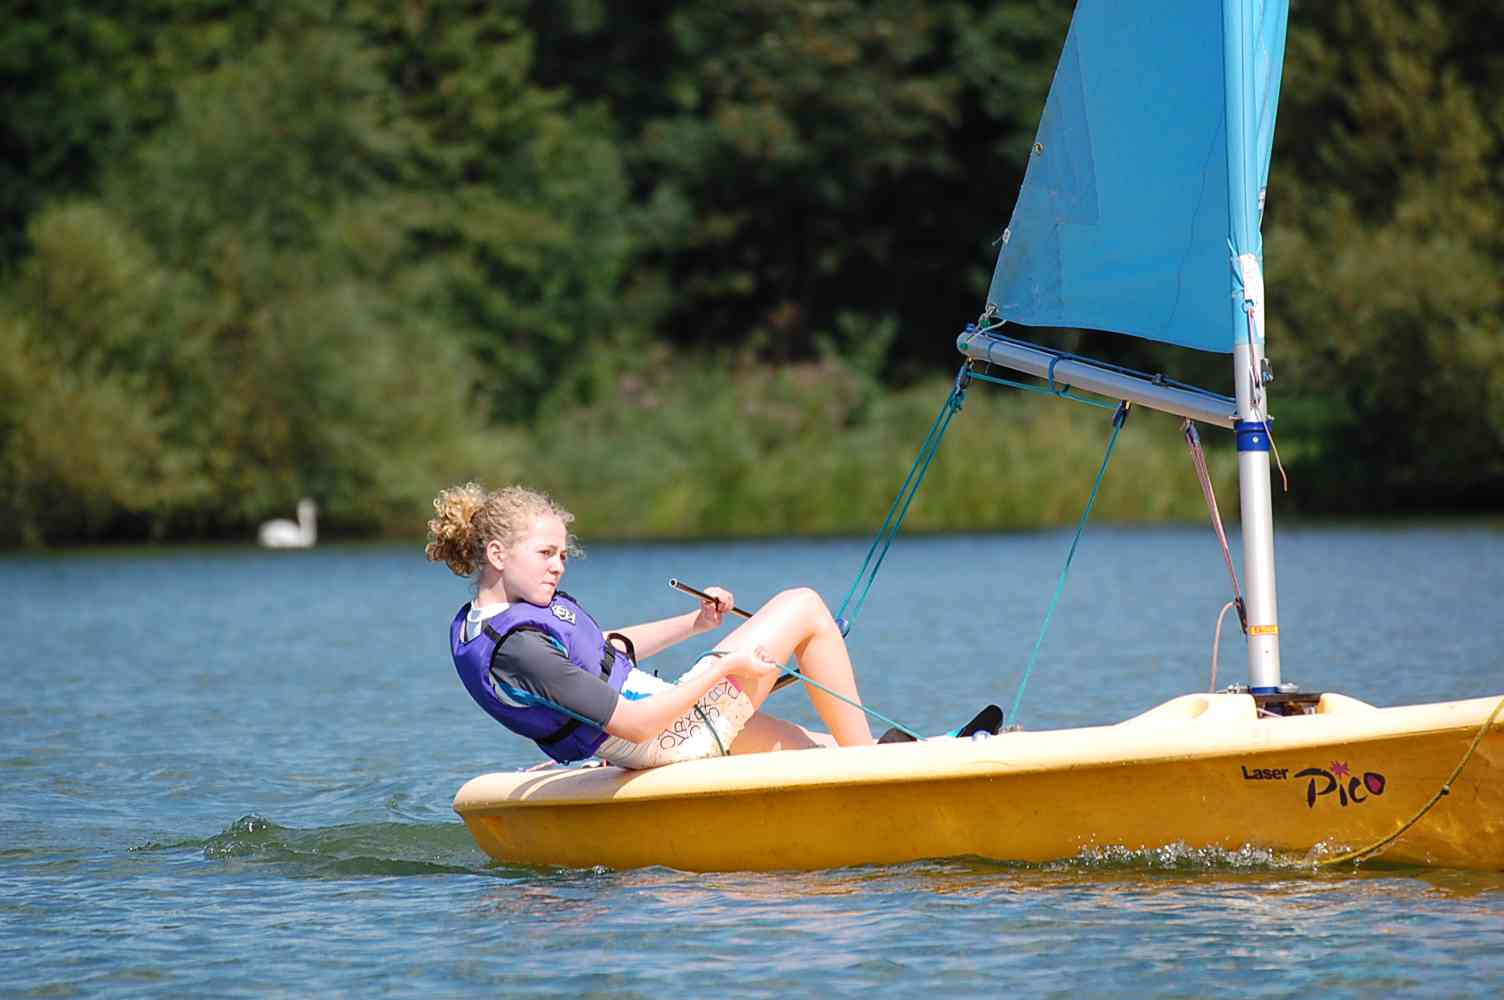 Private Sailing Lesson (Full-Day)